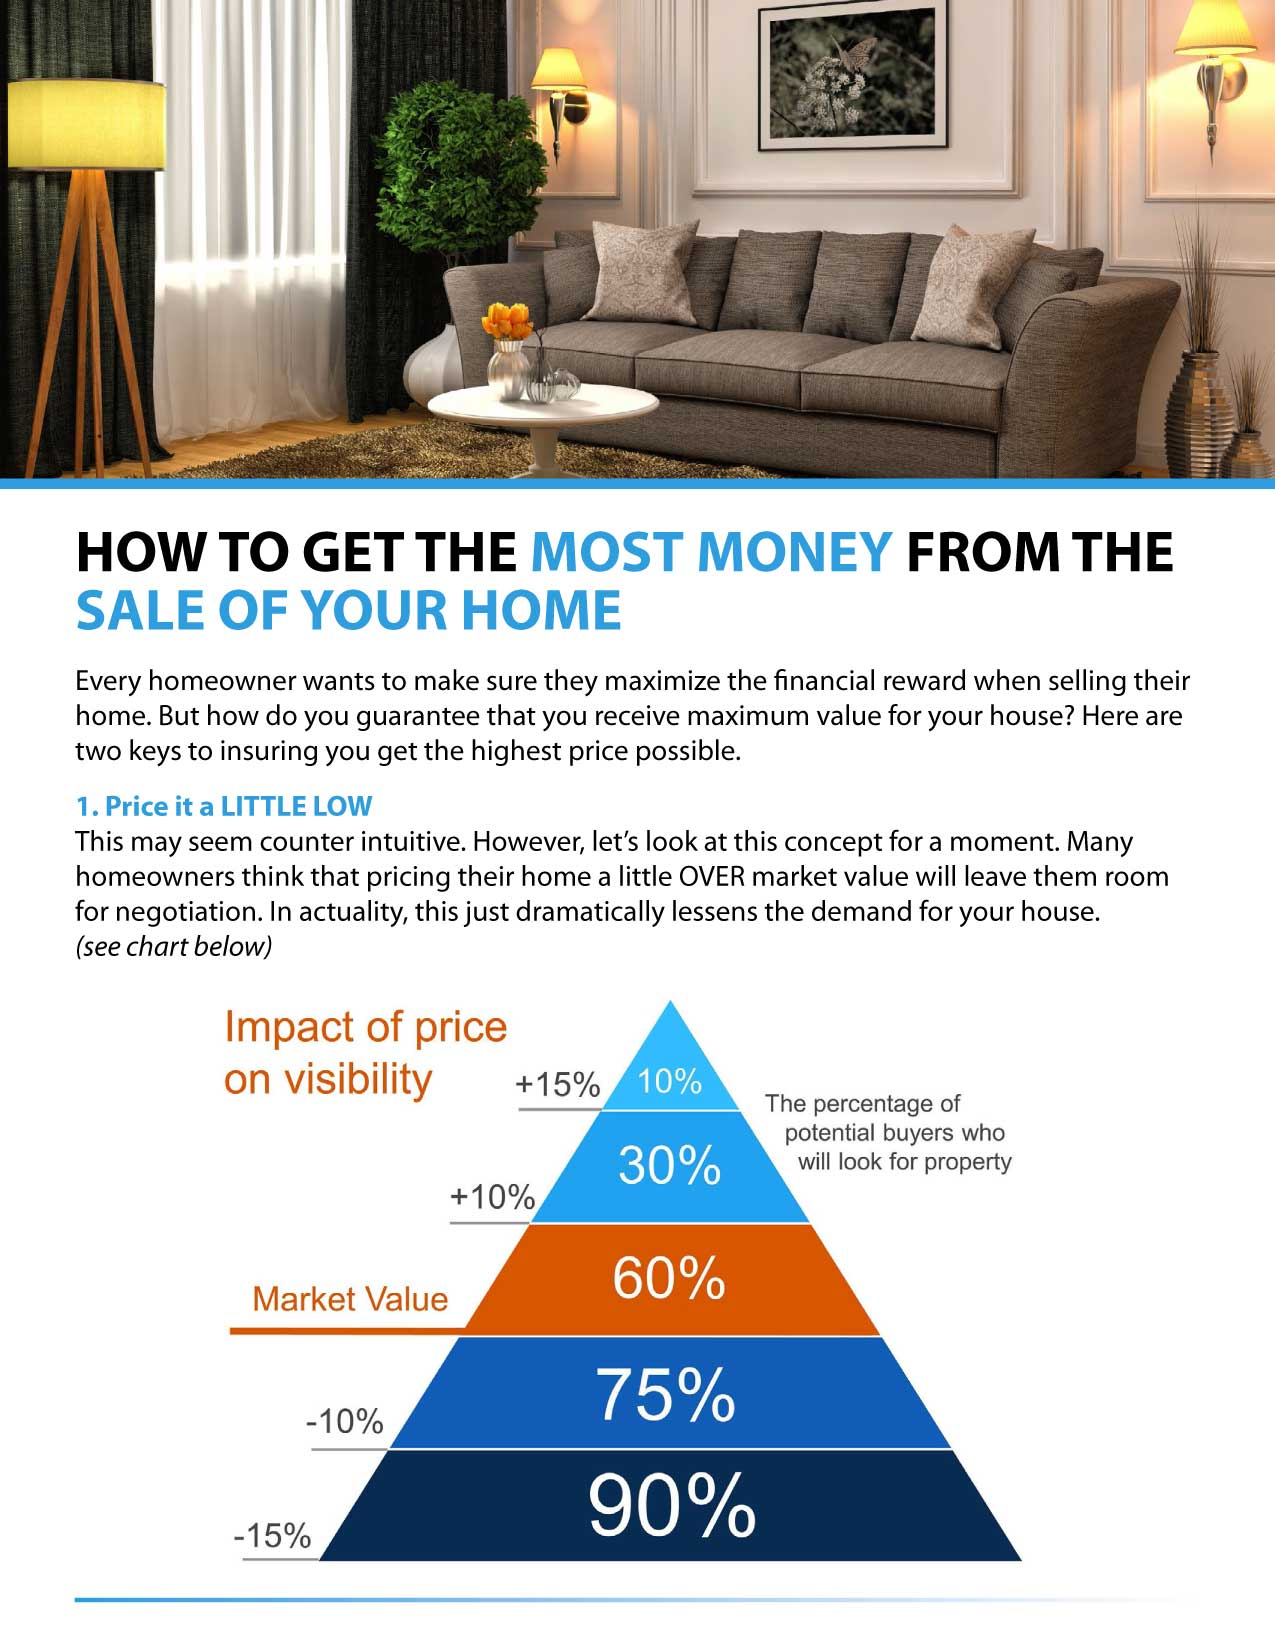 HOW TO GET THE MOST MONEY FROM THE SALE OF YOUR HOME